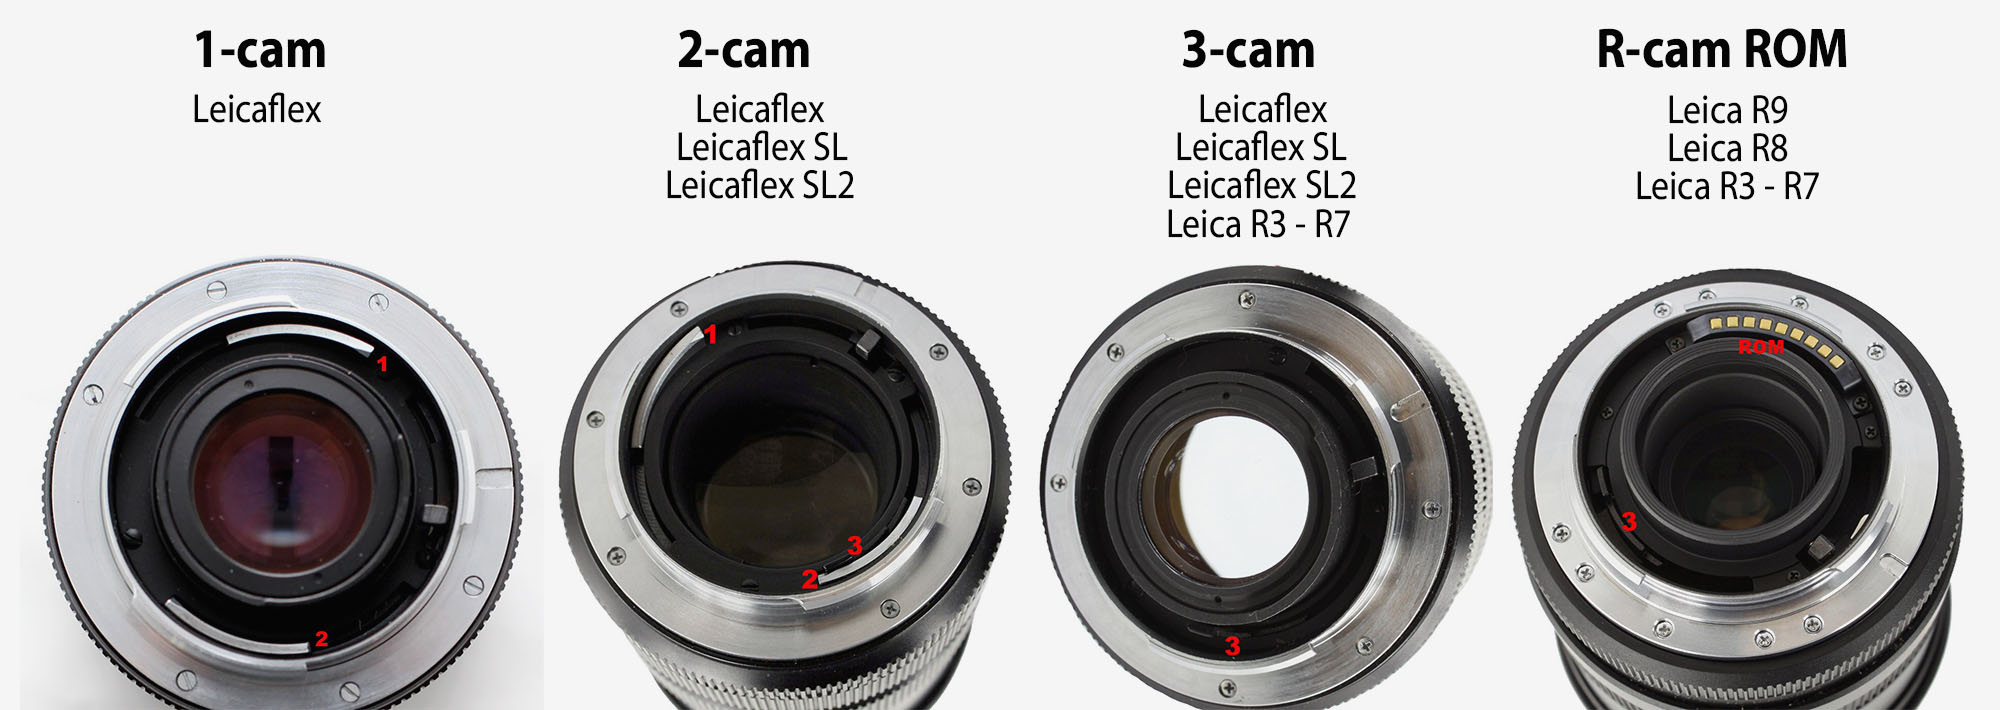 Cam = A Leica transmission system for the Leica R lenses, seen as metal parts inside the lens bayonet. (A cam is a rotatingpartinmachinery,designedto